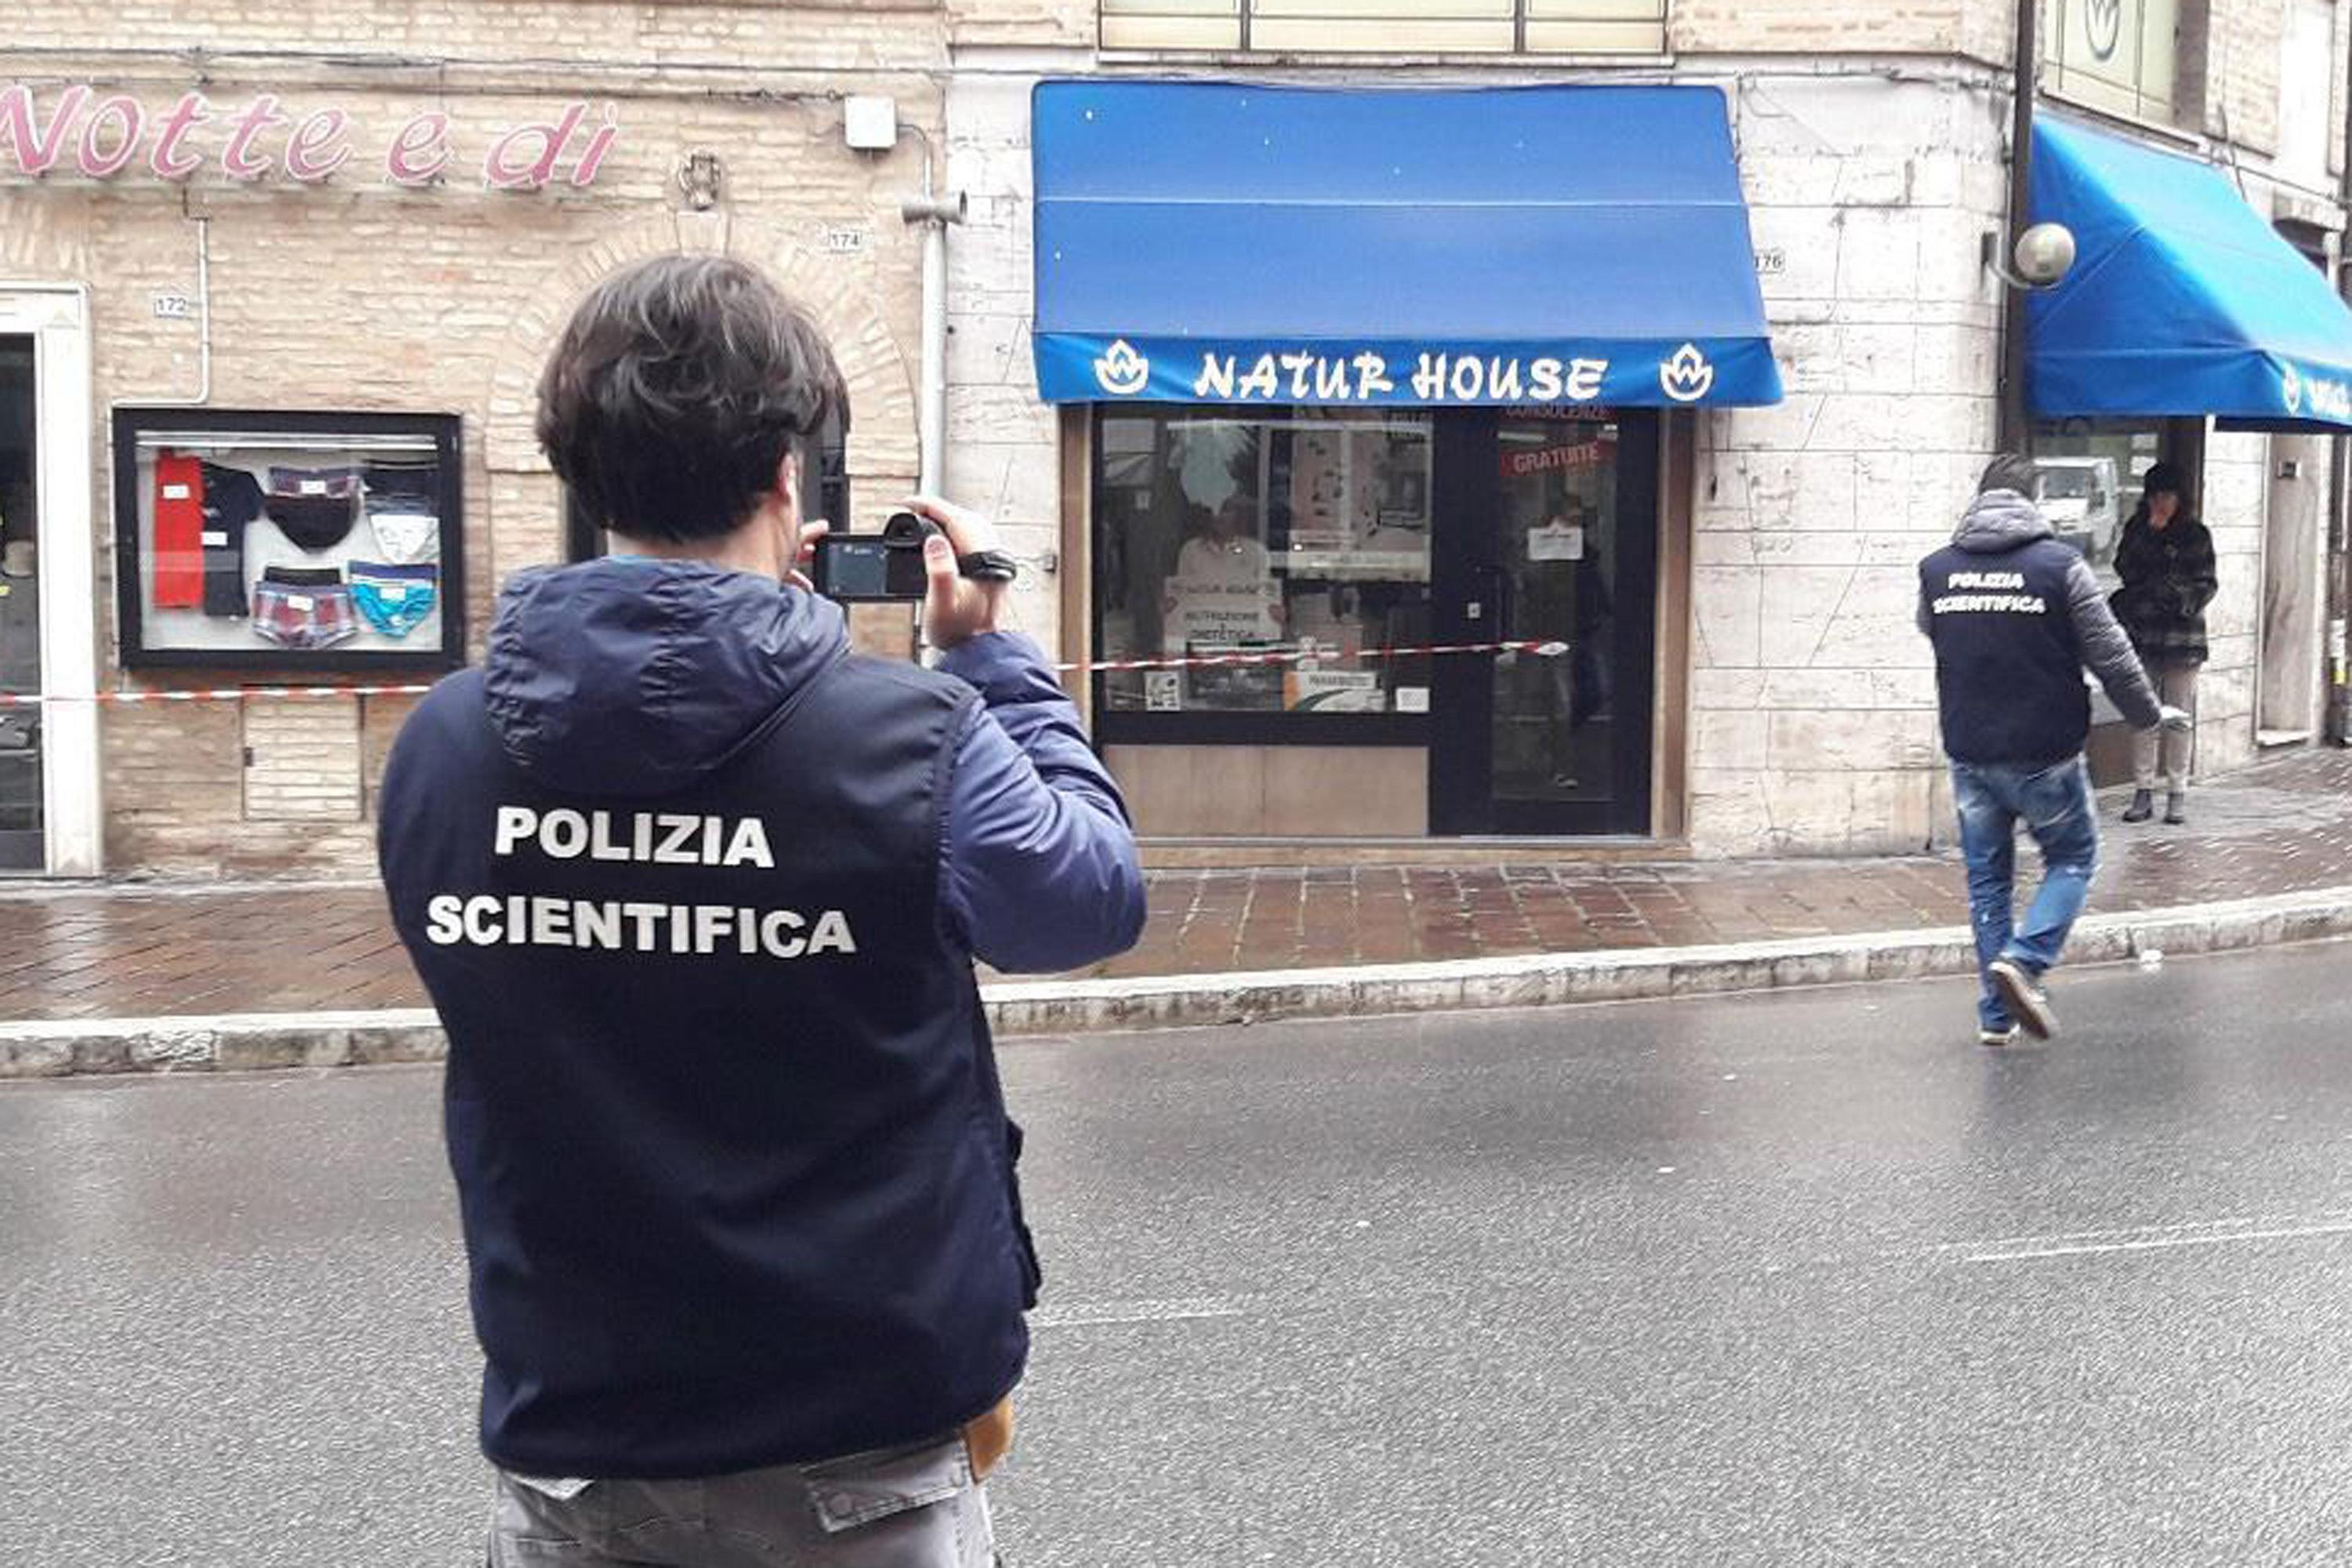 Italian Forensic policemen take pictures to the site of a shooting which broke out in Macerata, Italy, Saturday, Feb. 3, 2018. A lone gunman opened fire on foreigners in drive-by shootings in a central Italian city, wounding an undisclosed number of people Saturday morning before being arrested, police said.{&amp;nbsp;} (Carotti/ANSA via AP)<p></p>